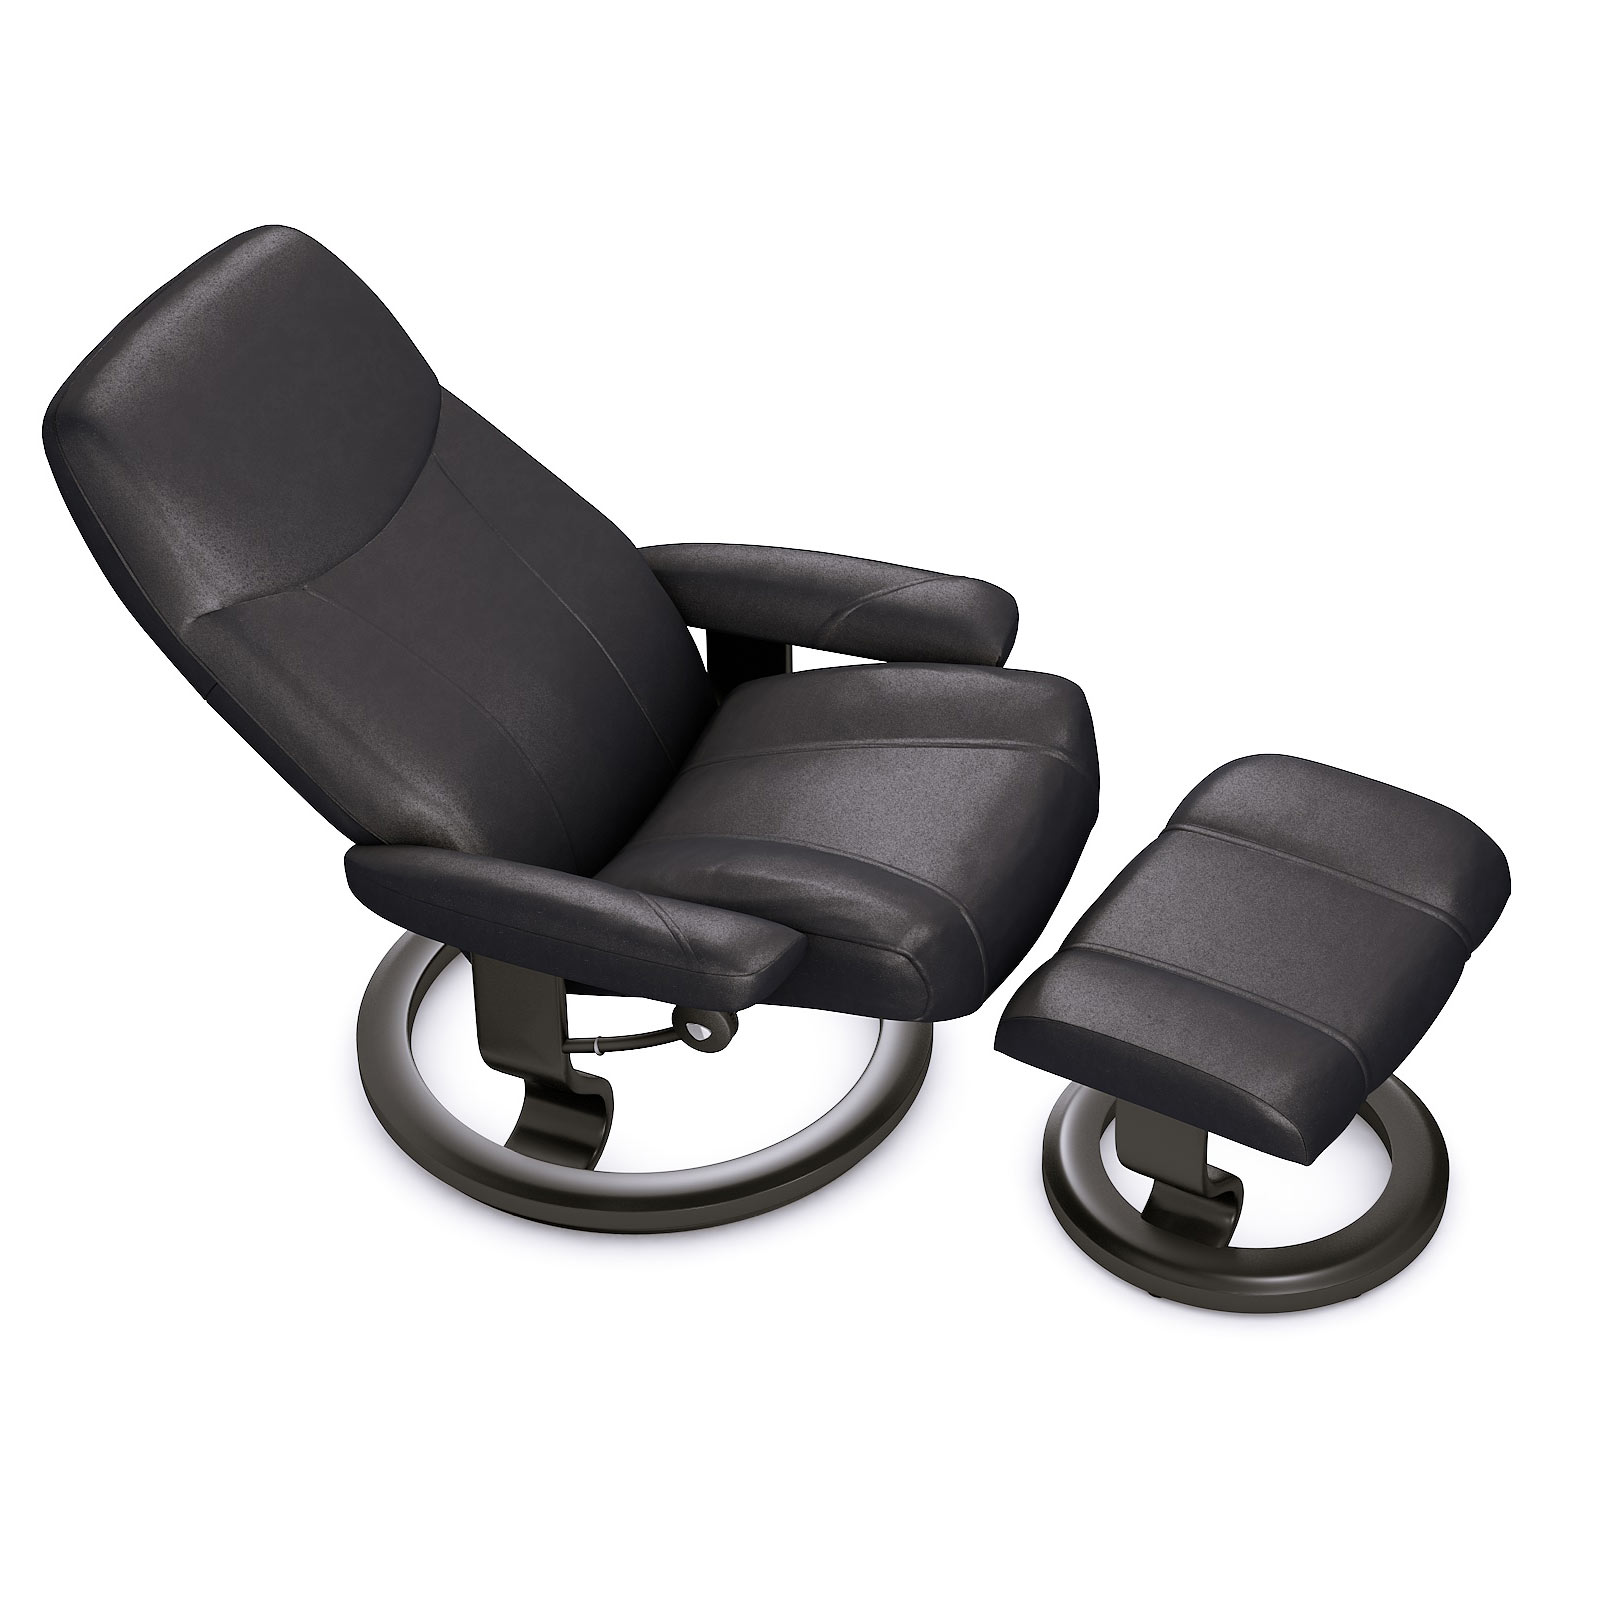 Stressless Consul M Sessel Und Hocker Stressless Consul Ledersessel Schwarz House Of Comfort